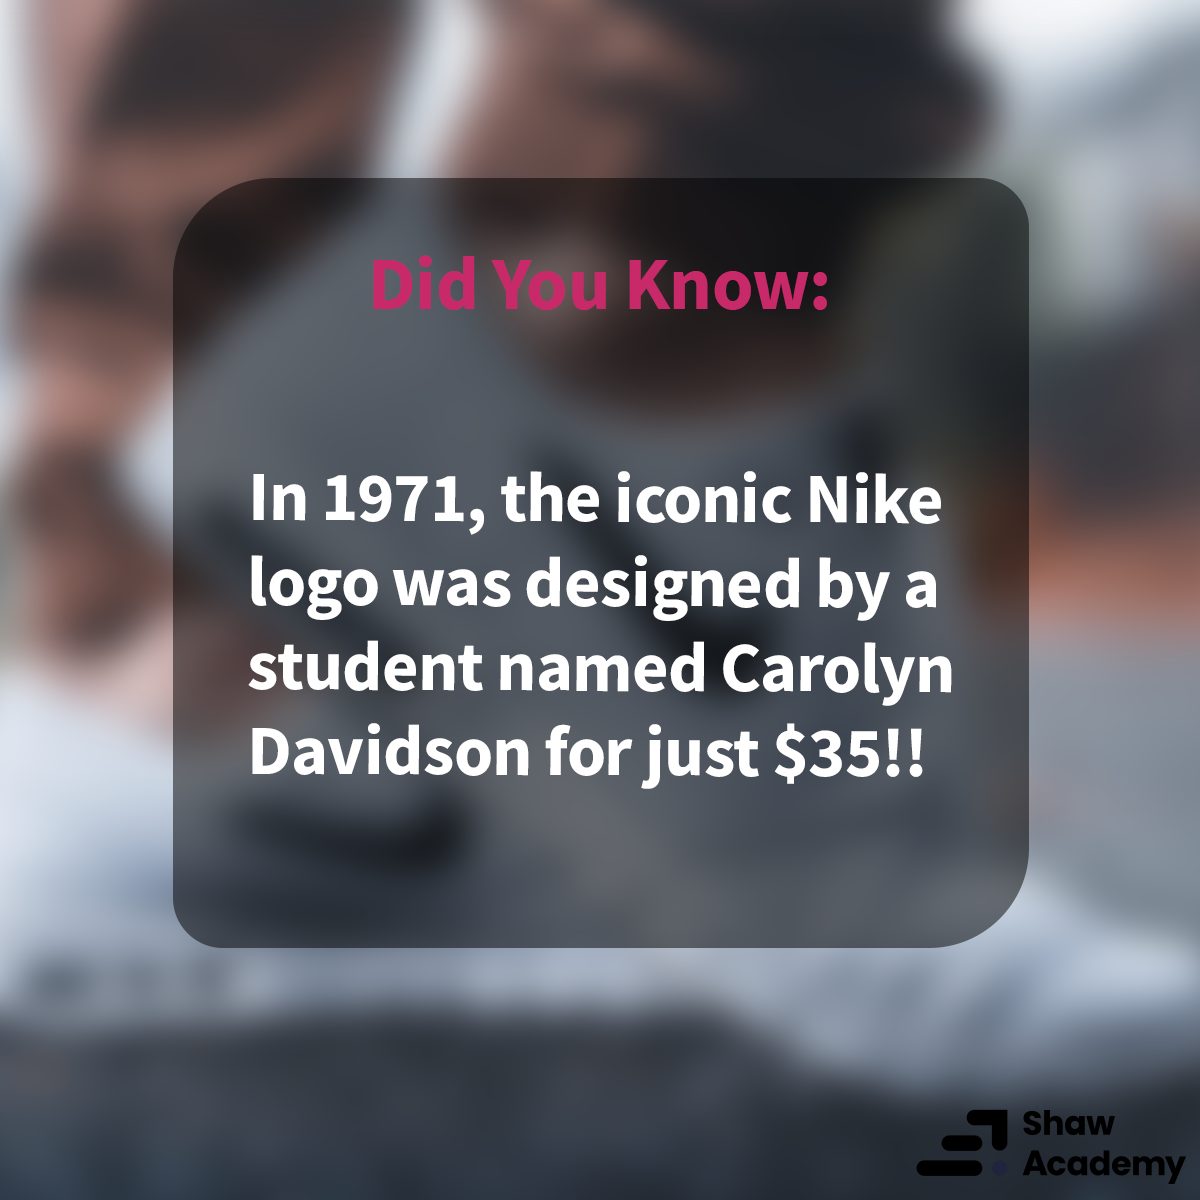 #DidYouKnow  You could create the next big logo with the help of our Graphic Design Course: https://t.co/WHzr4JTpou  #shawacademy #graphicdesign https://t.co/EJyhtTQx3t